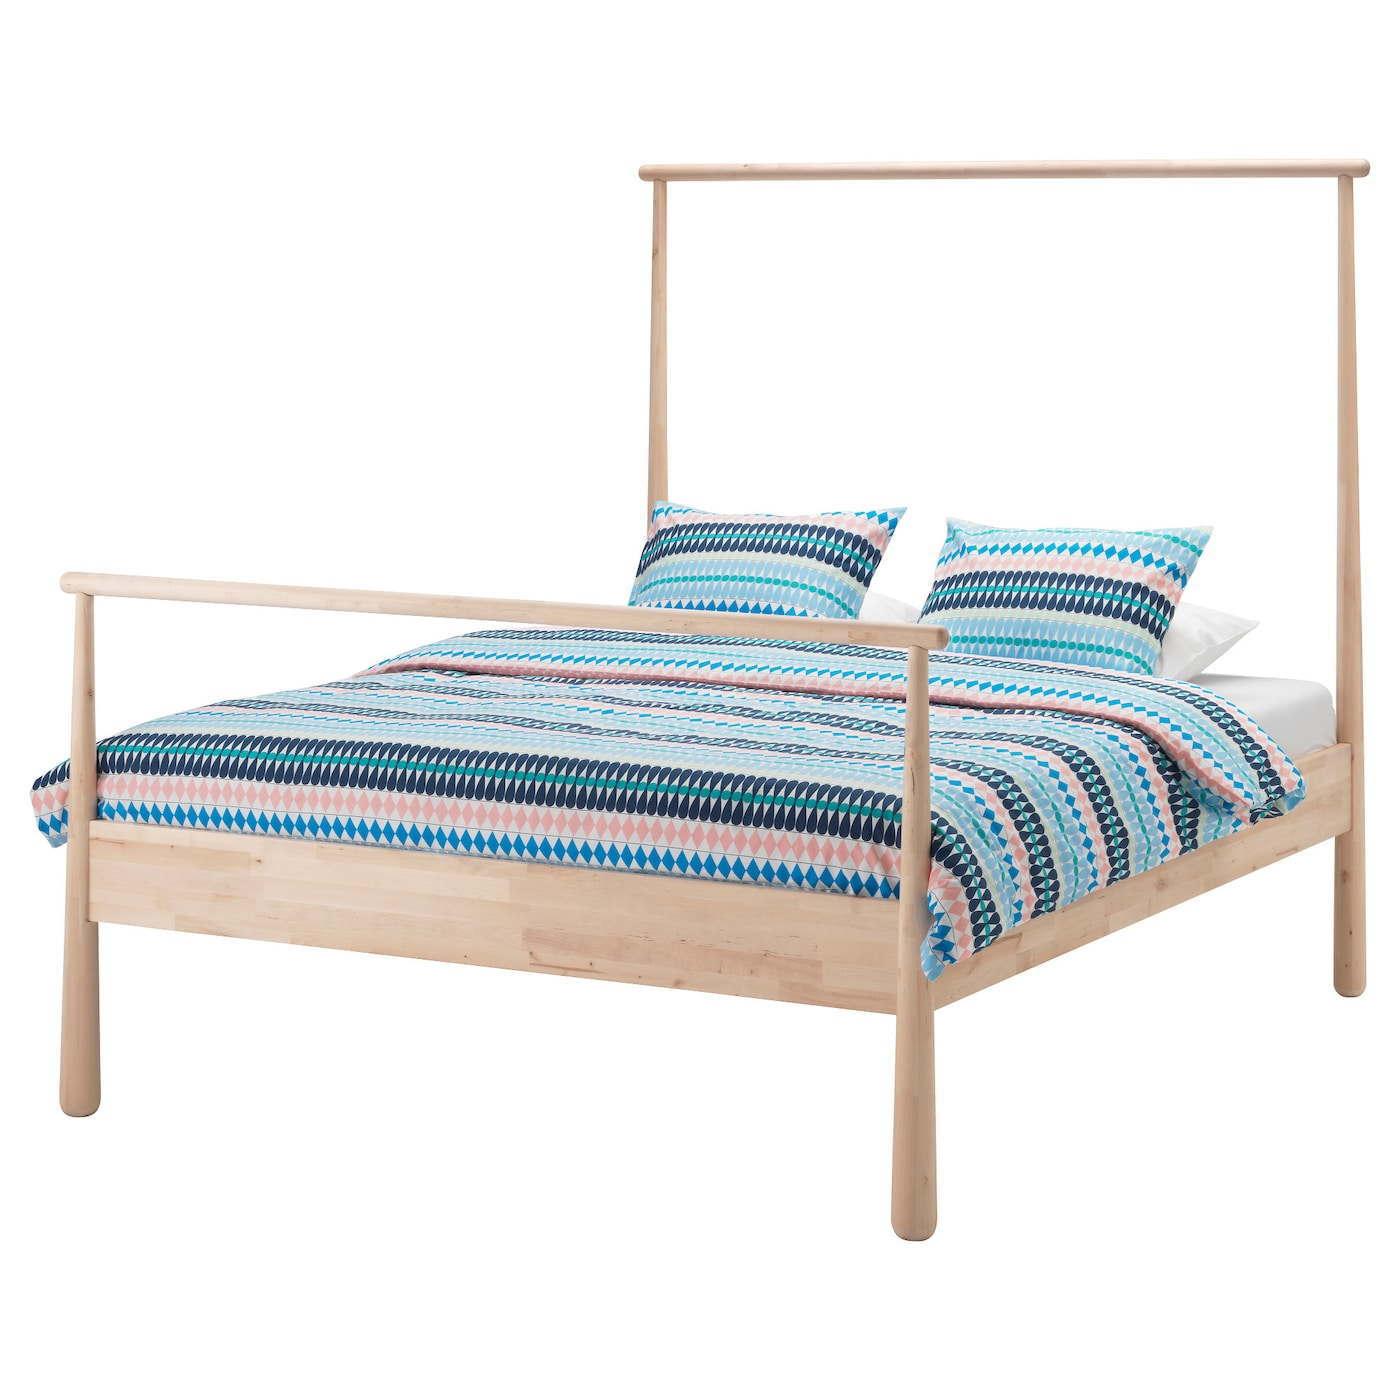 Gj ra bed frame birch lur y standard double ikea for Ikea mattress frame